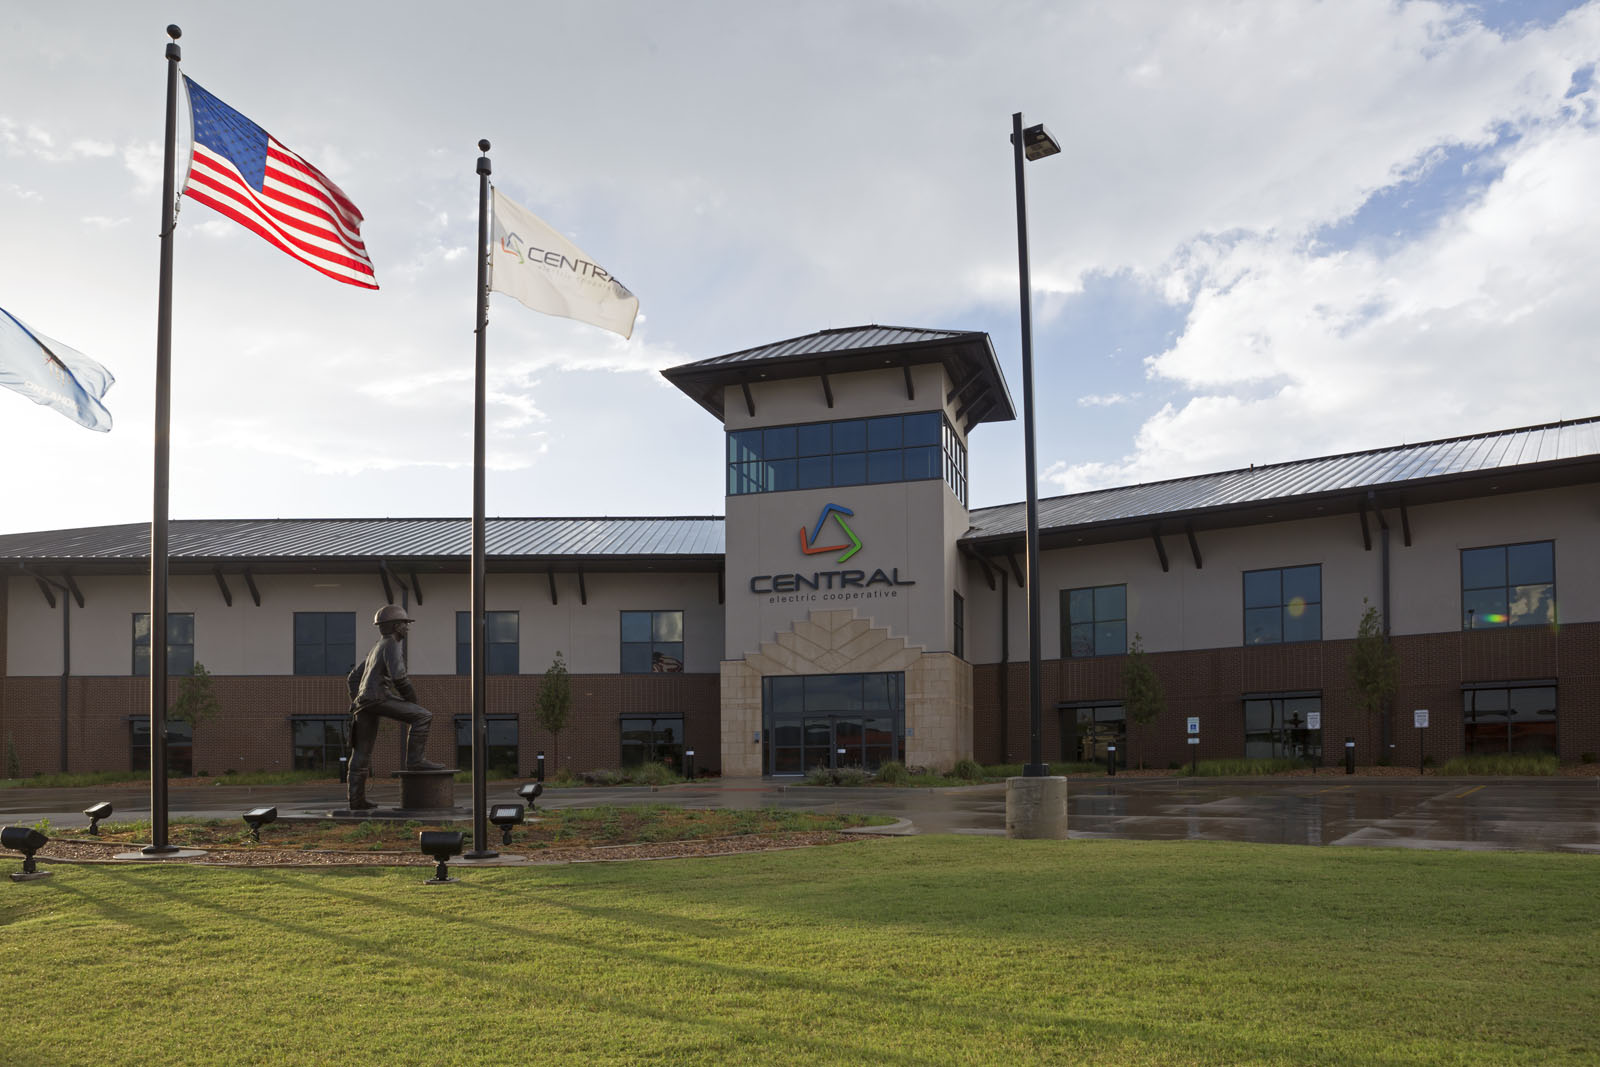 PARIC Corp. finished work on Central Rural Electric Cooperative which consists of 44,000 sq. ft. of administration office space.